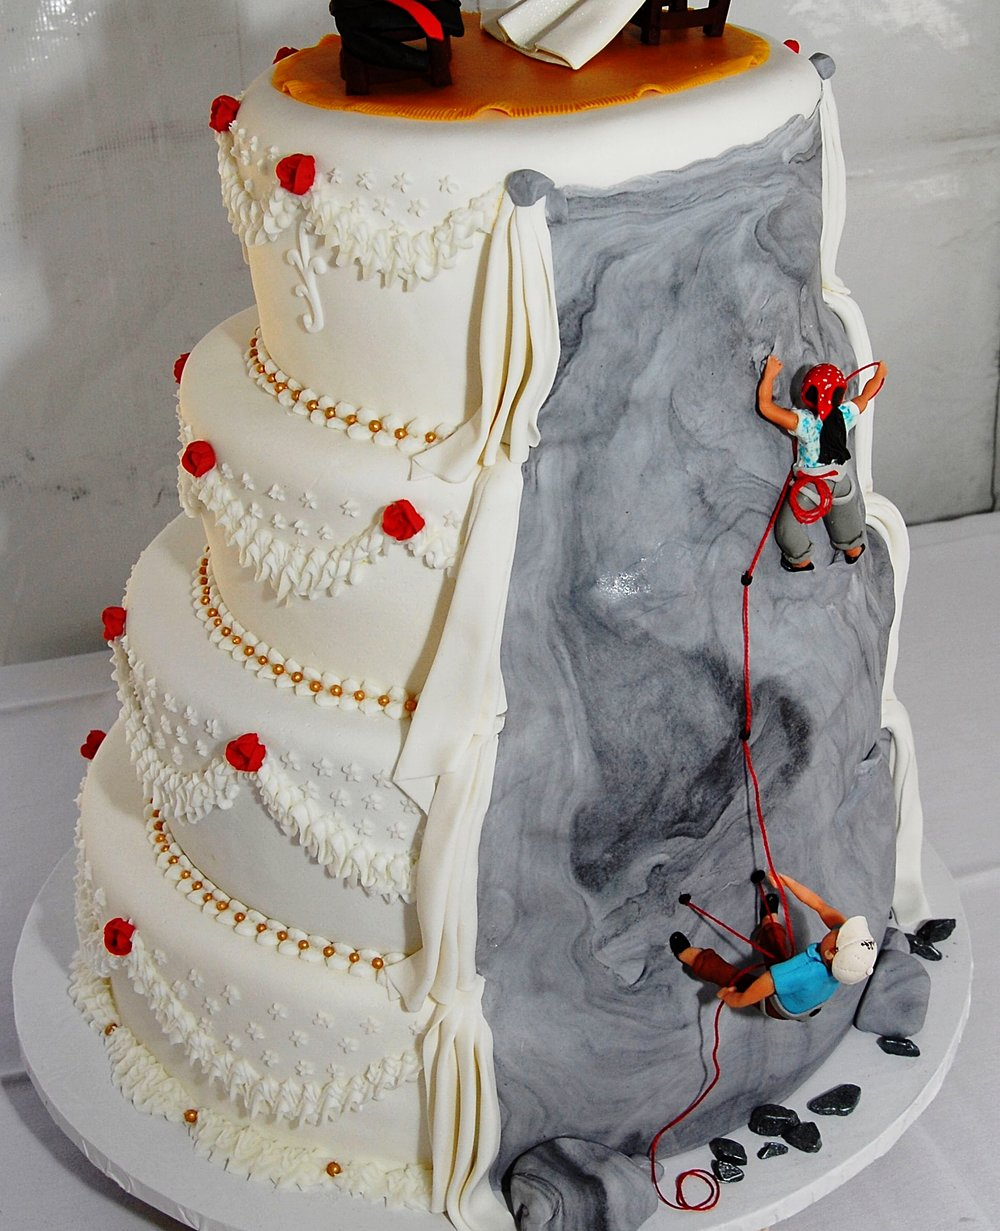 Cake Image from  Cake Central  and it's a wedding cake not a birthday cake. There is a whole  Pinterest  page of climbing themed cakes - two of our favorite things.